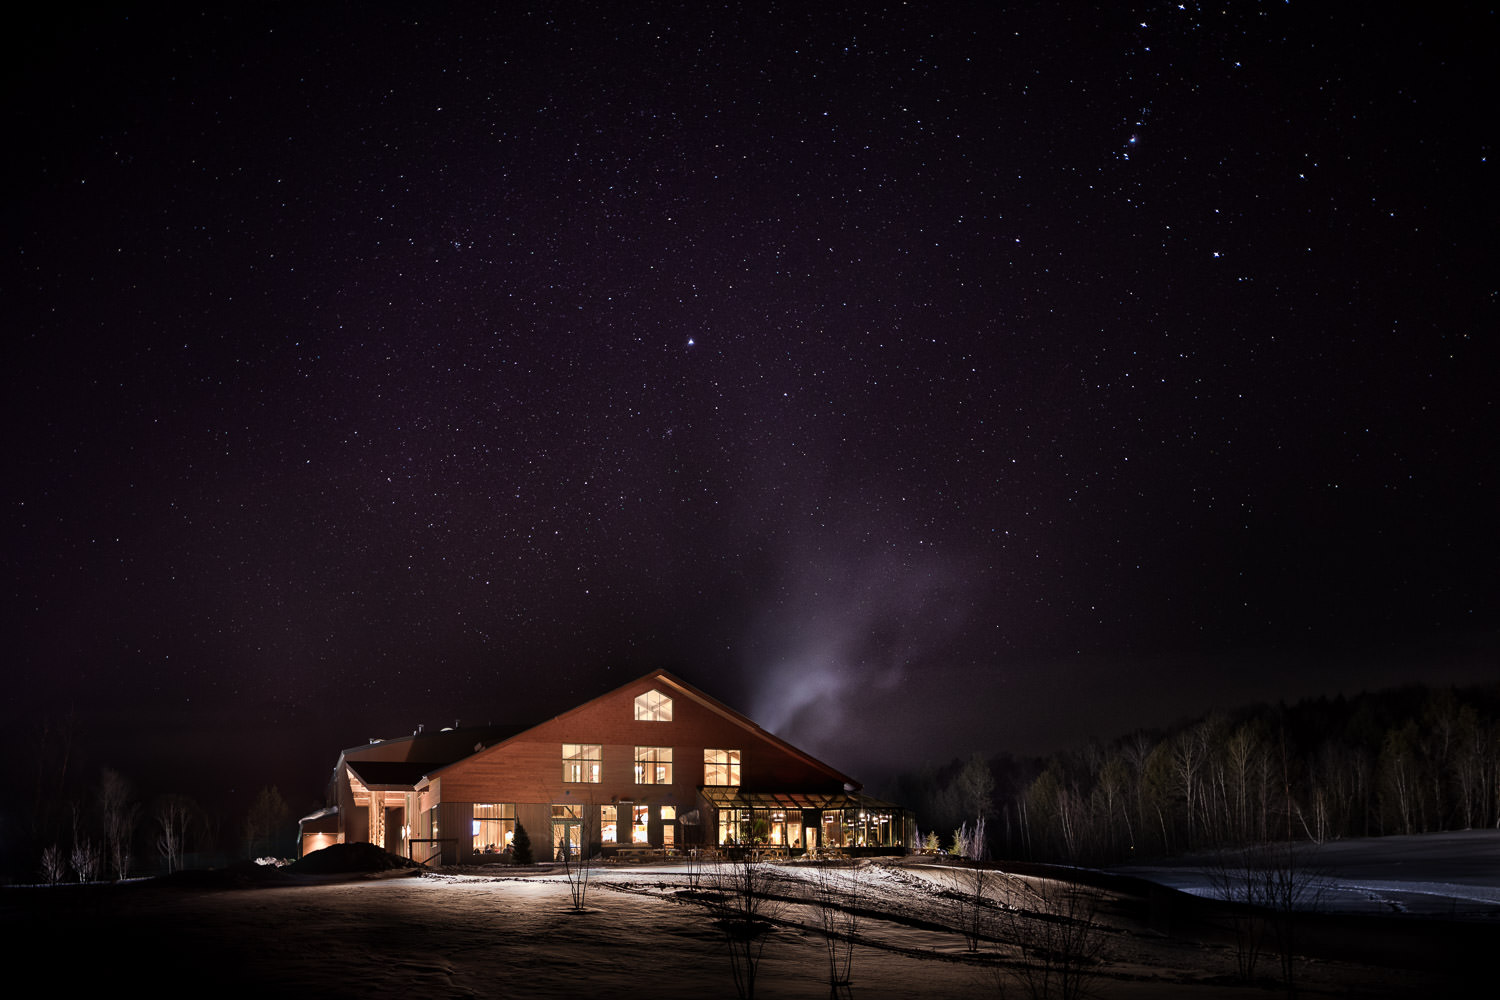 Exterior photo shot at twilight of the von Trapp Brewery Bierhall in Stowe Vermont by Vermont architecture photography Studio SB